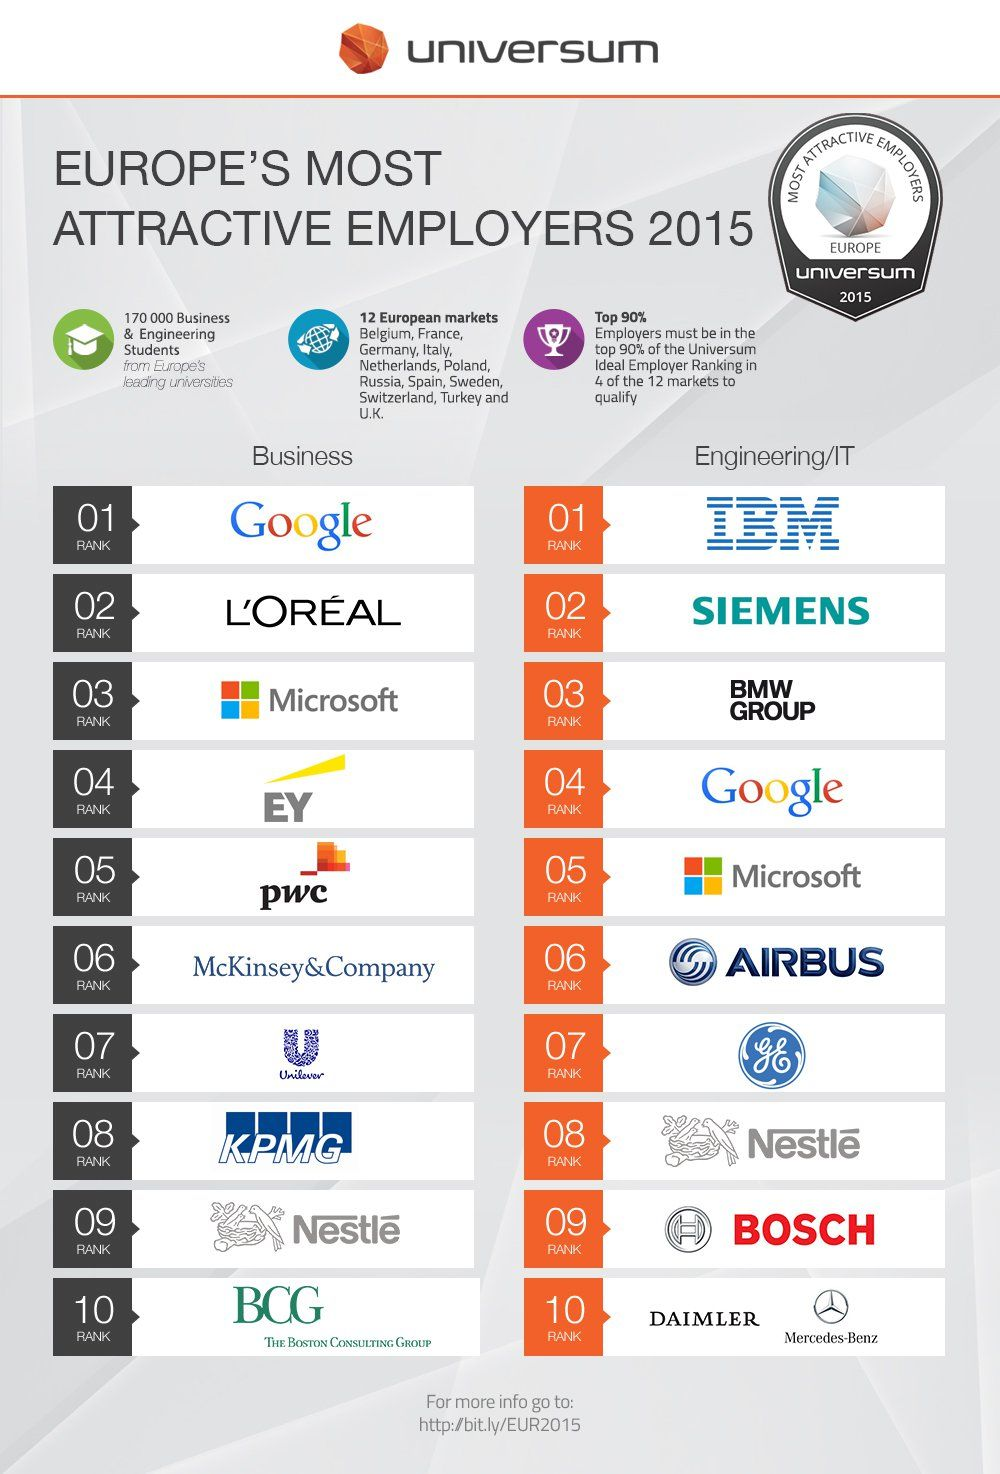 Europe's Most Attractive Employers 2015